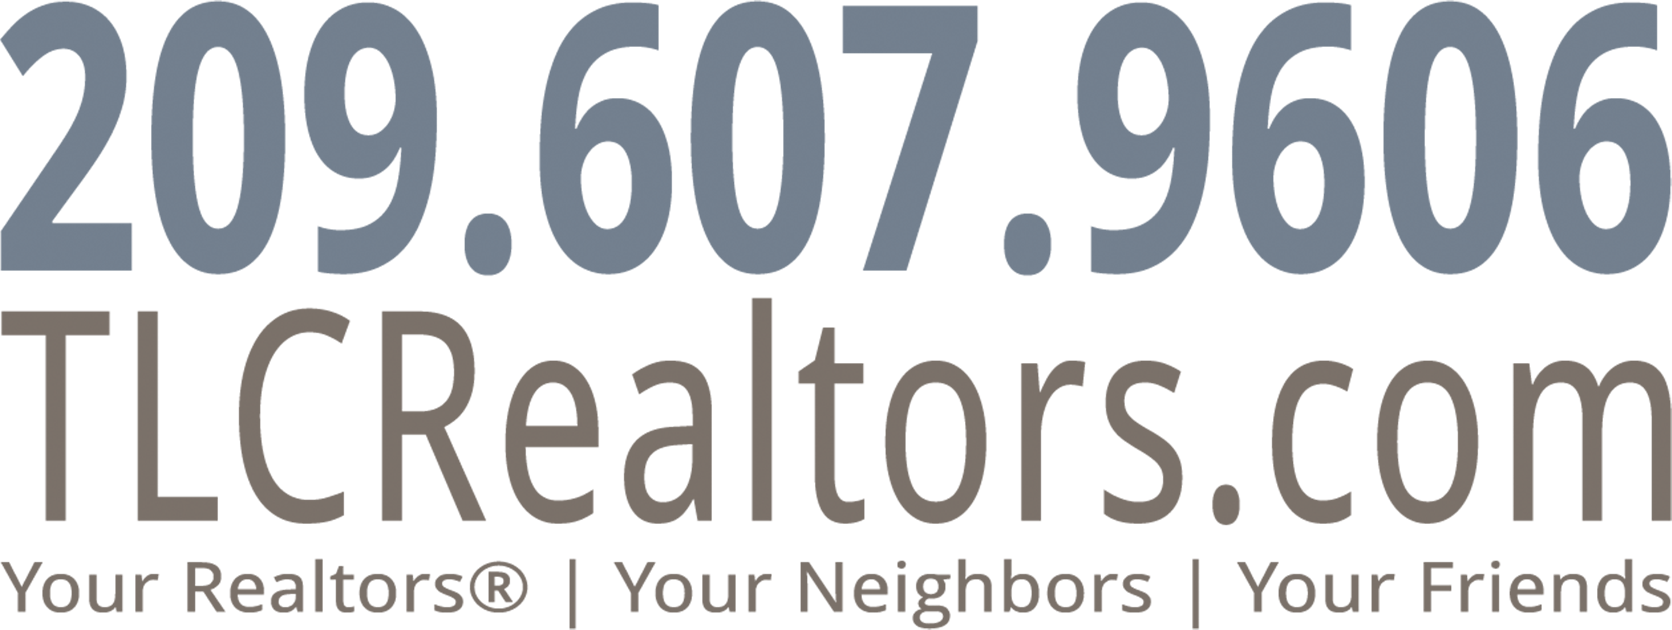 TLC contact information - 209-607-9606 - tlcrealtors.com